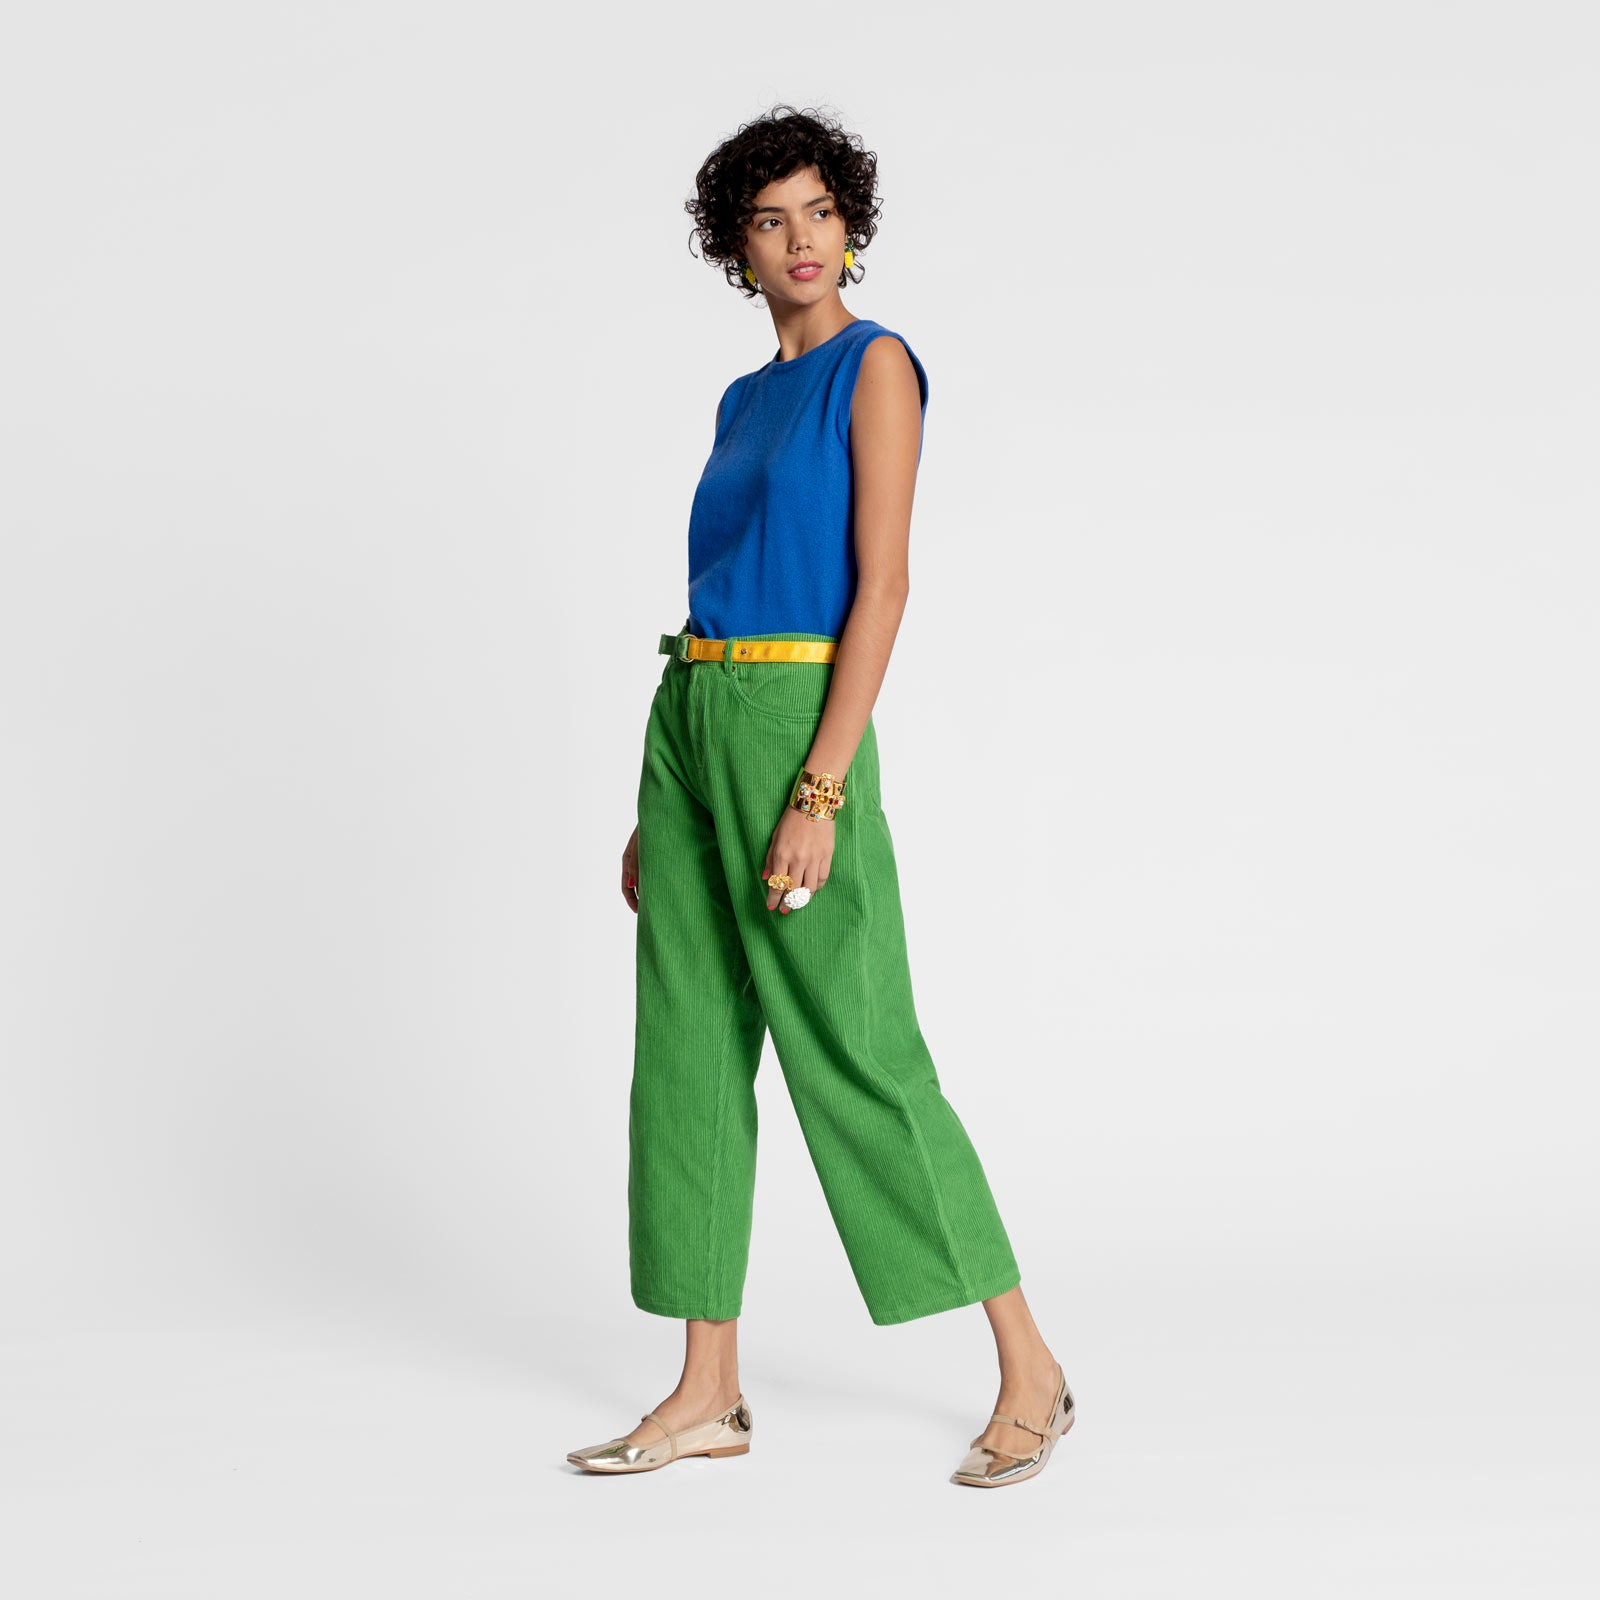 Jane Corduroy Pant Green